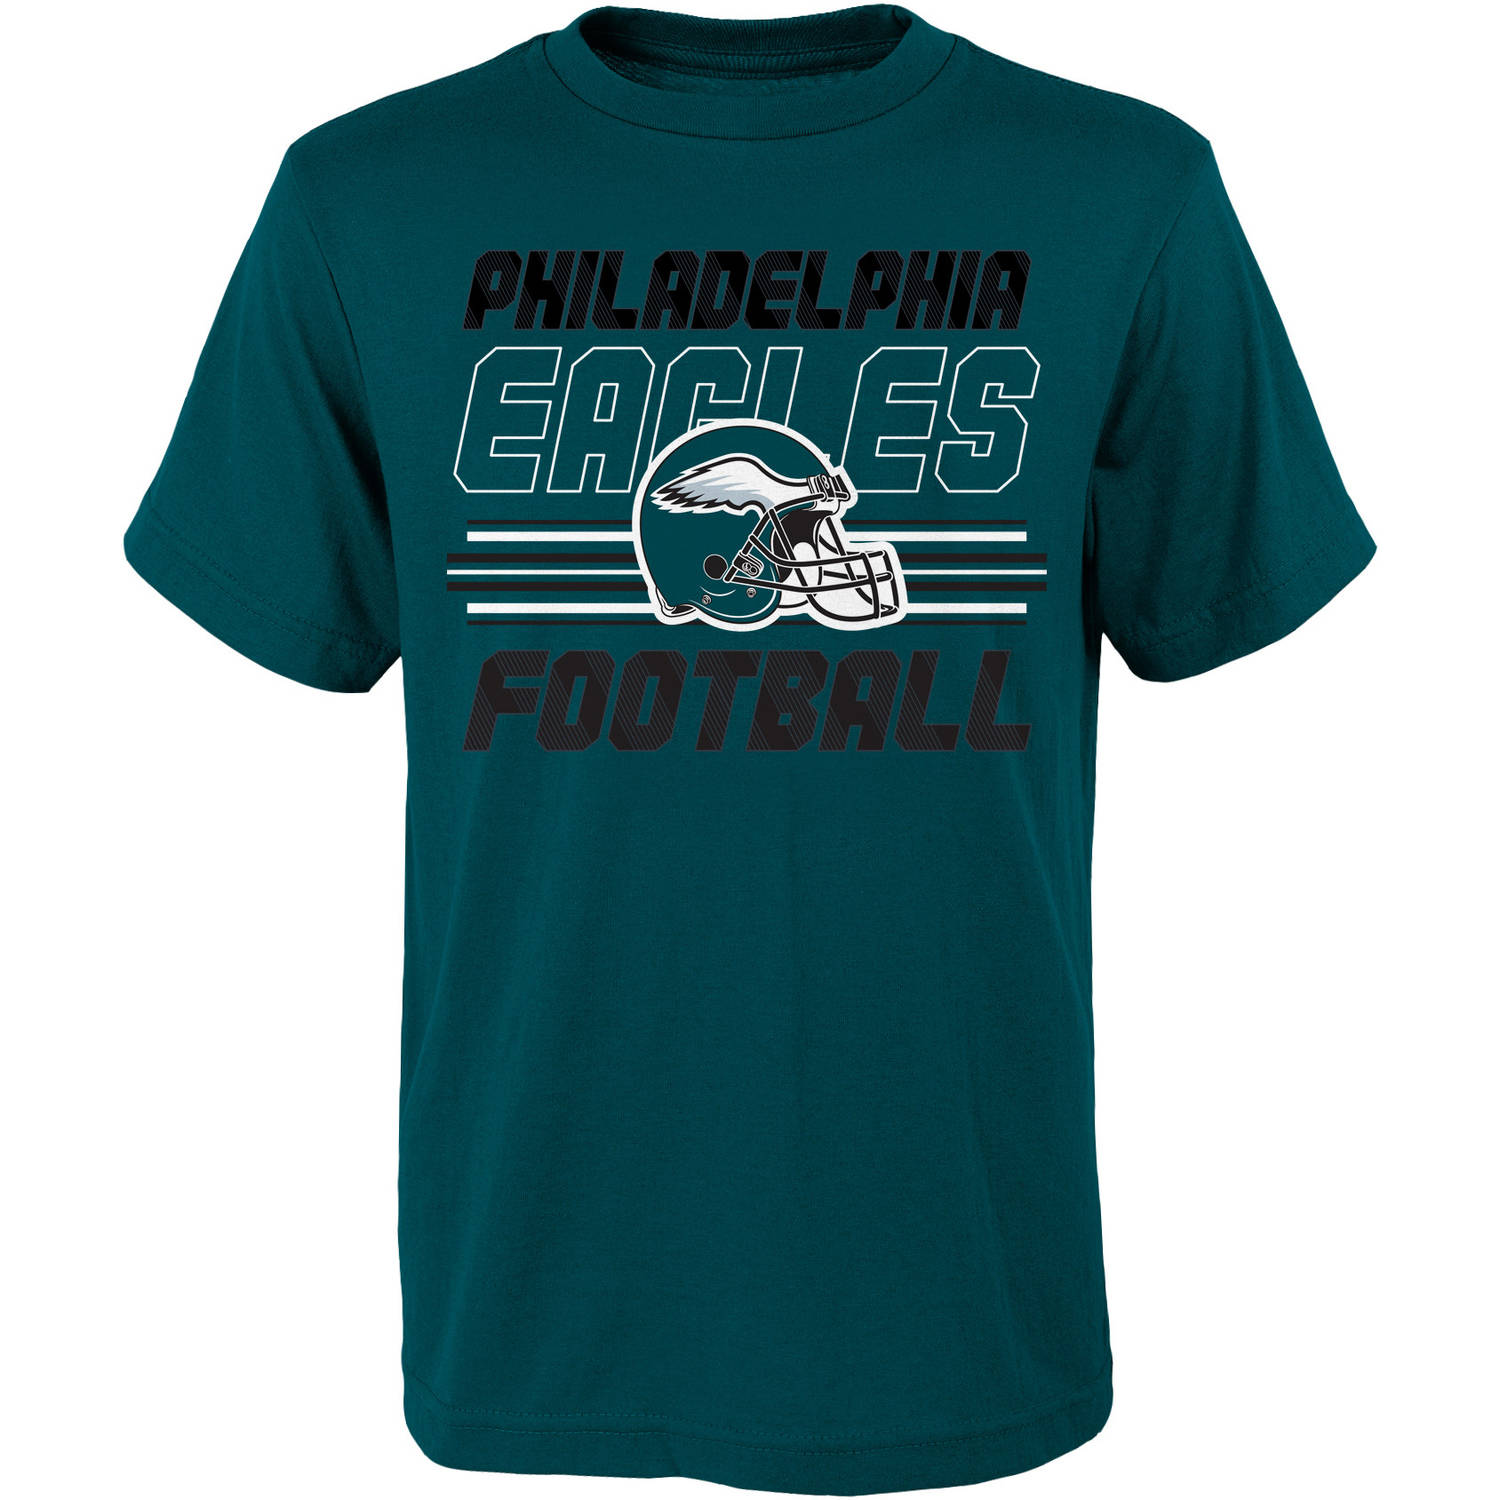 NFL, Team: EAGLES ,Youth Team SS Tee, Sizes 4-18, Team Colors